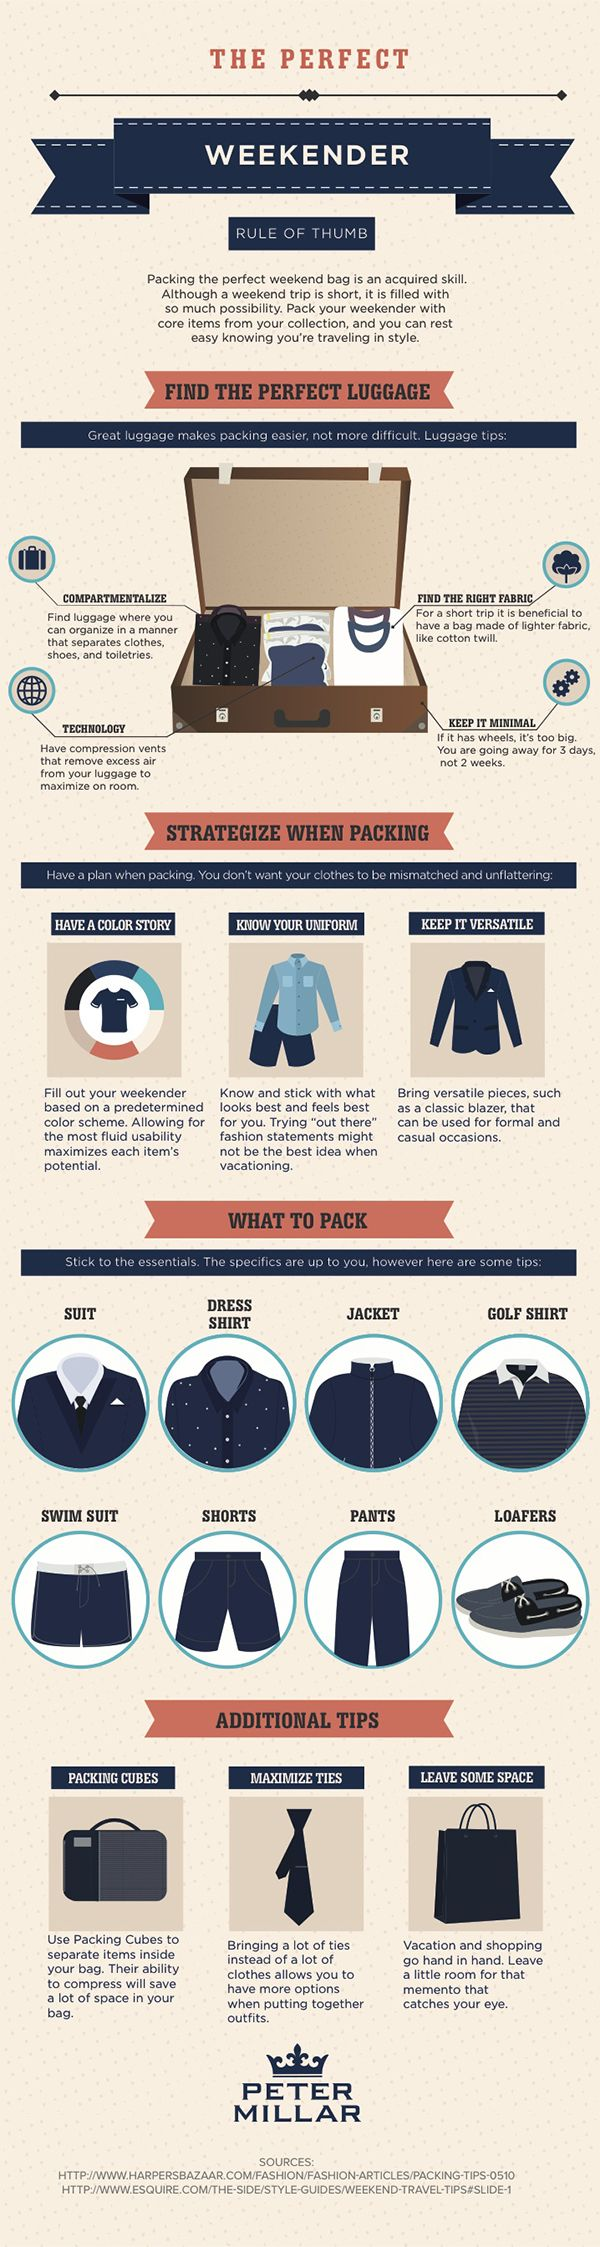 Packing for the perfect weekend is more challenging than you would think. Whether you're planning a weekend getaway for business or pleasure, pack cor